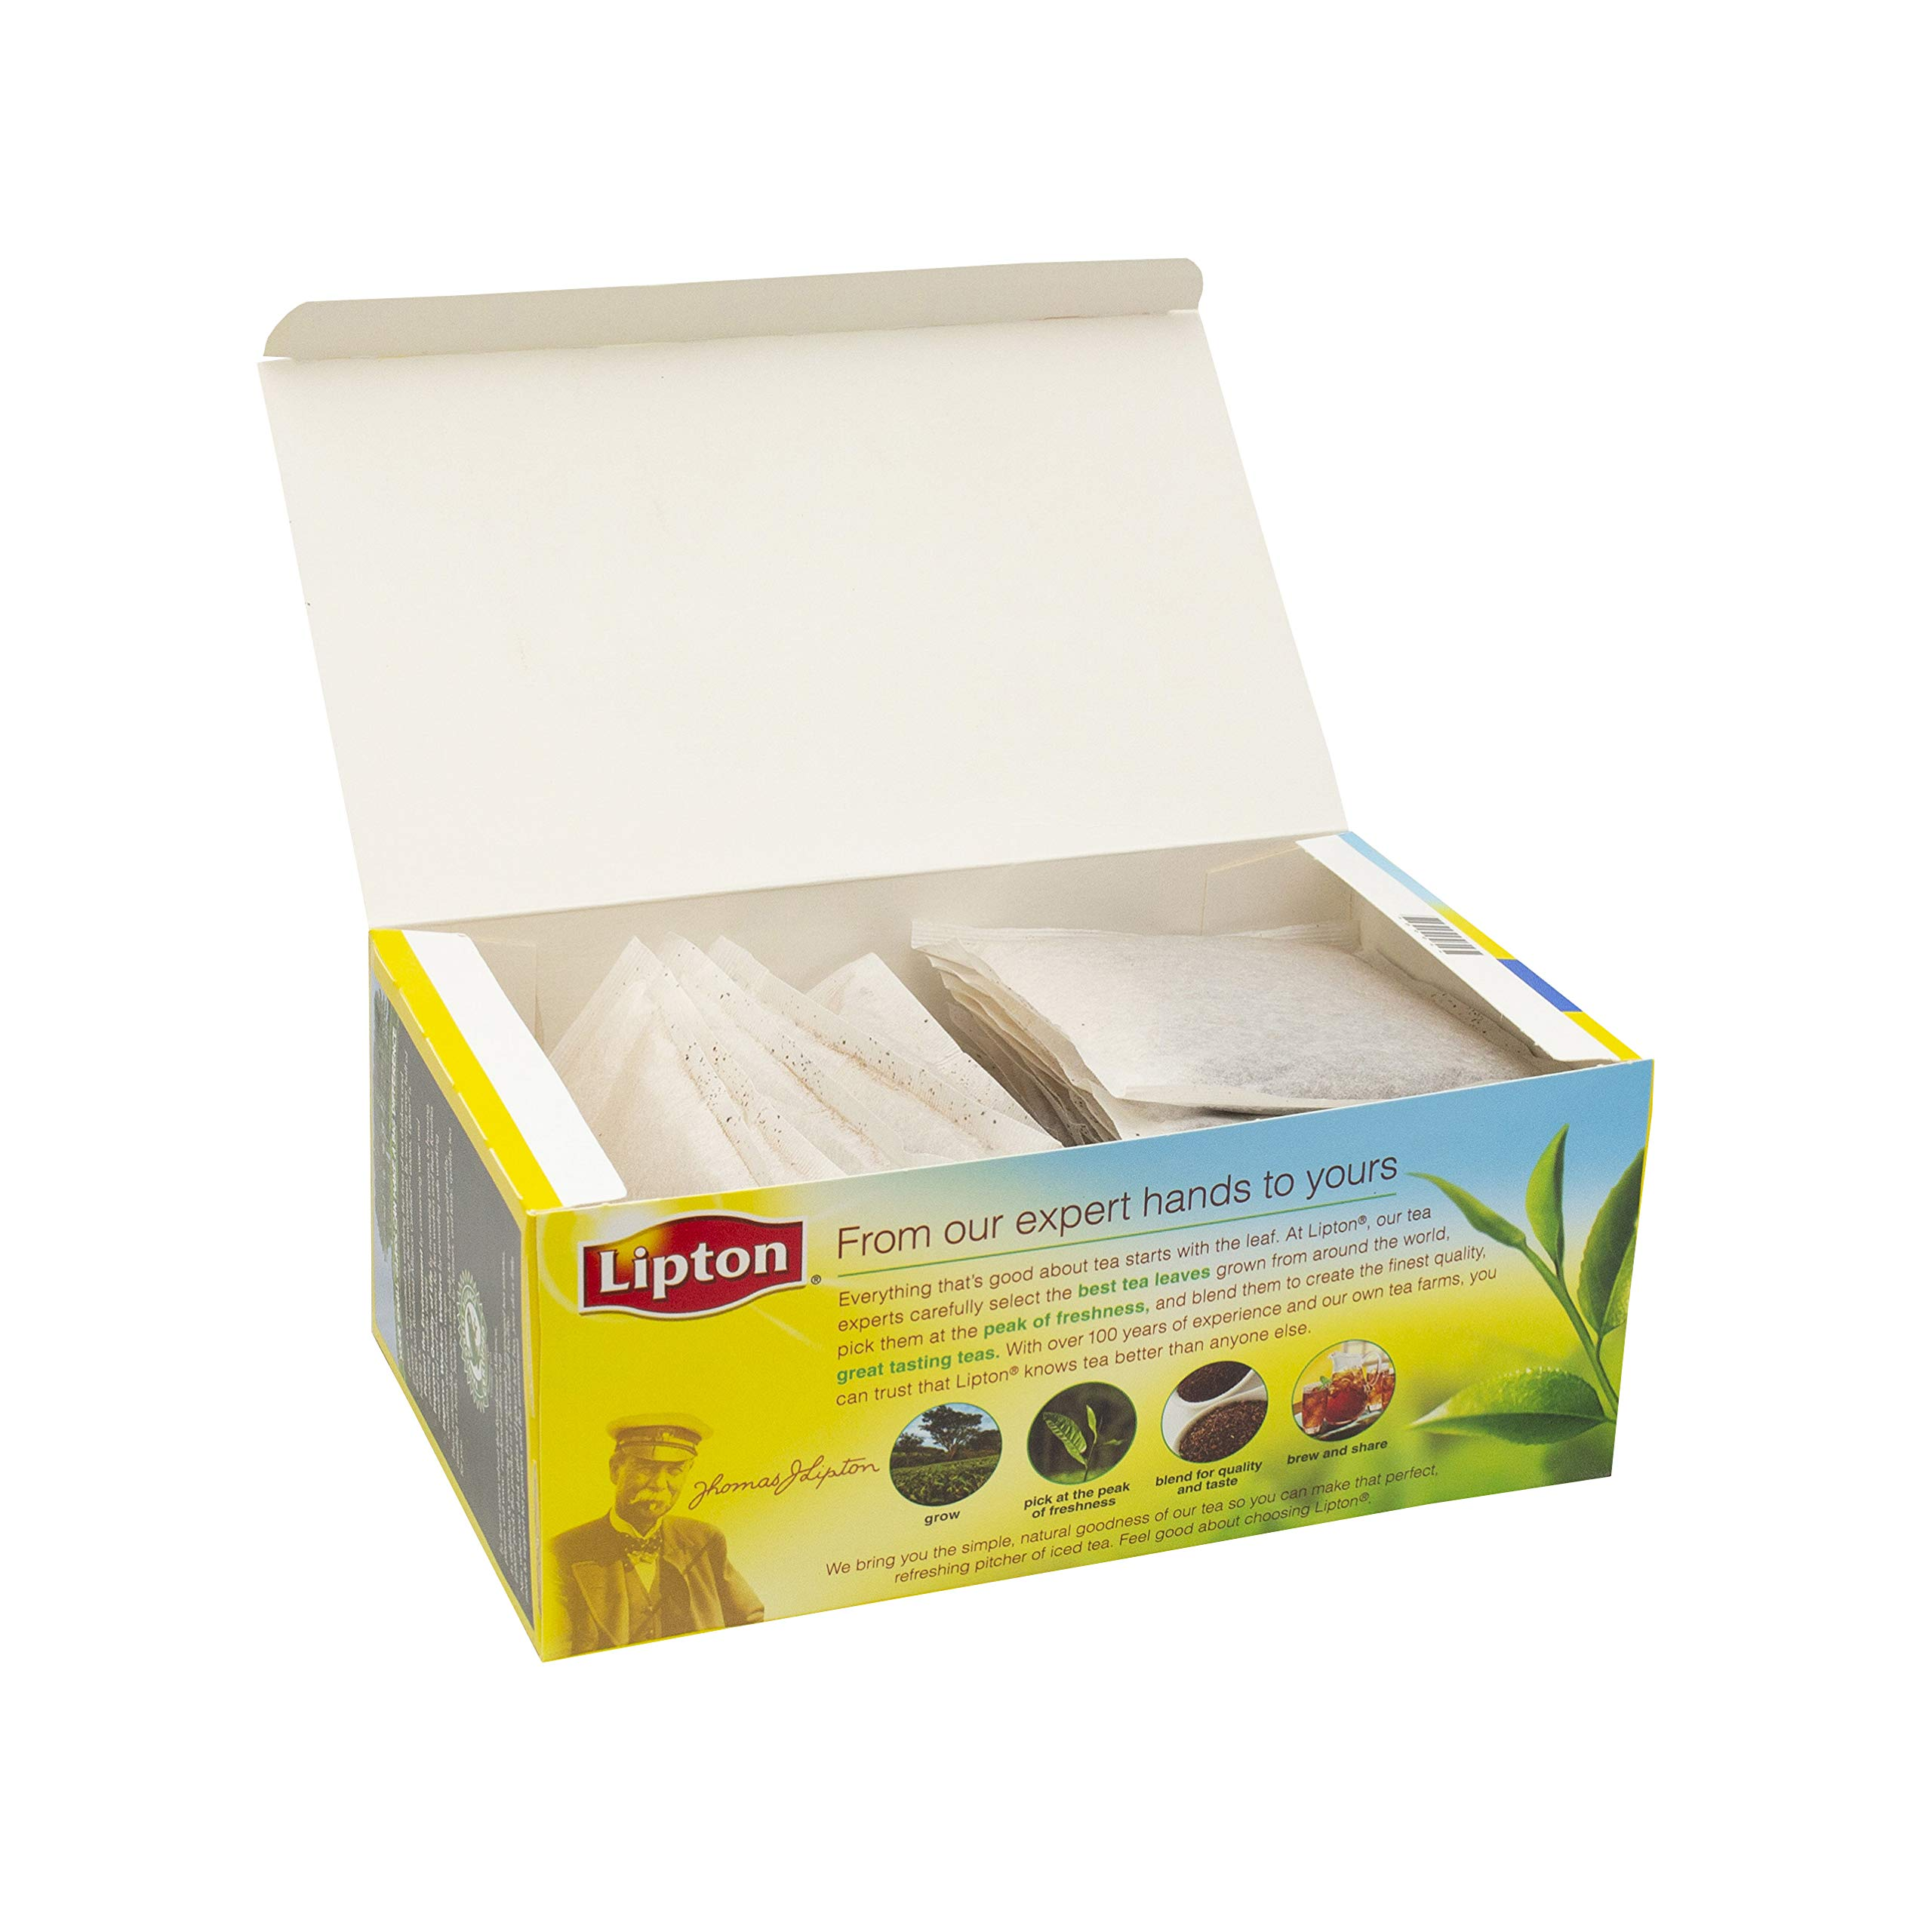 Lipton Sweet Iced Tea Bags Made with Tea Leaves Sourced from Rainforest Alliance Certified Farms, 1 gallon, 2x Pack of 24 by Lipton